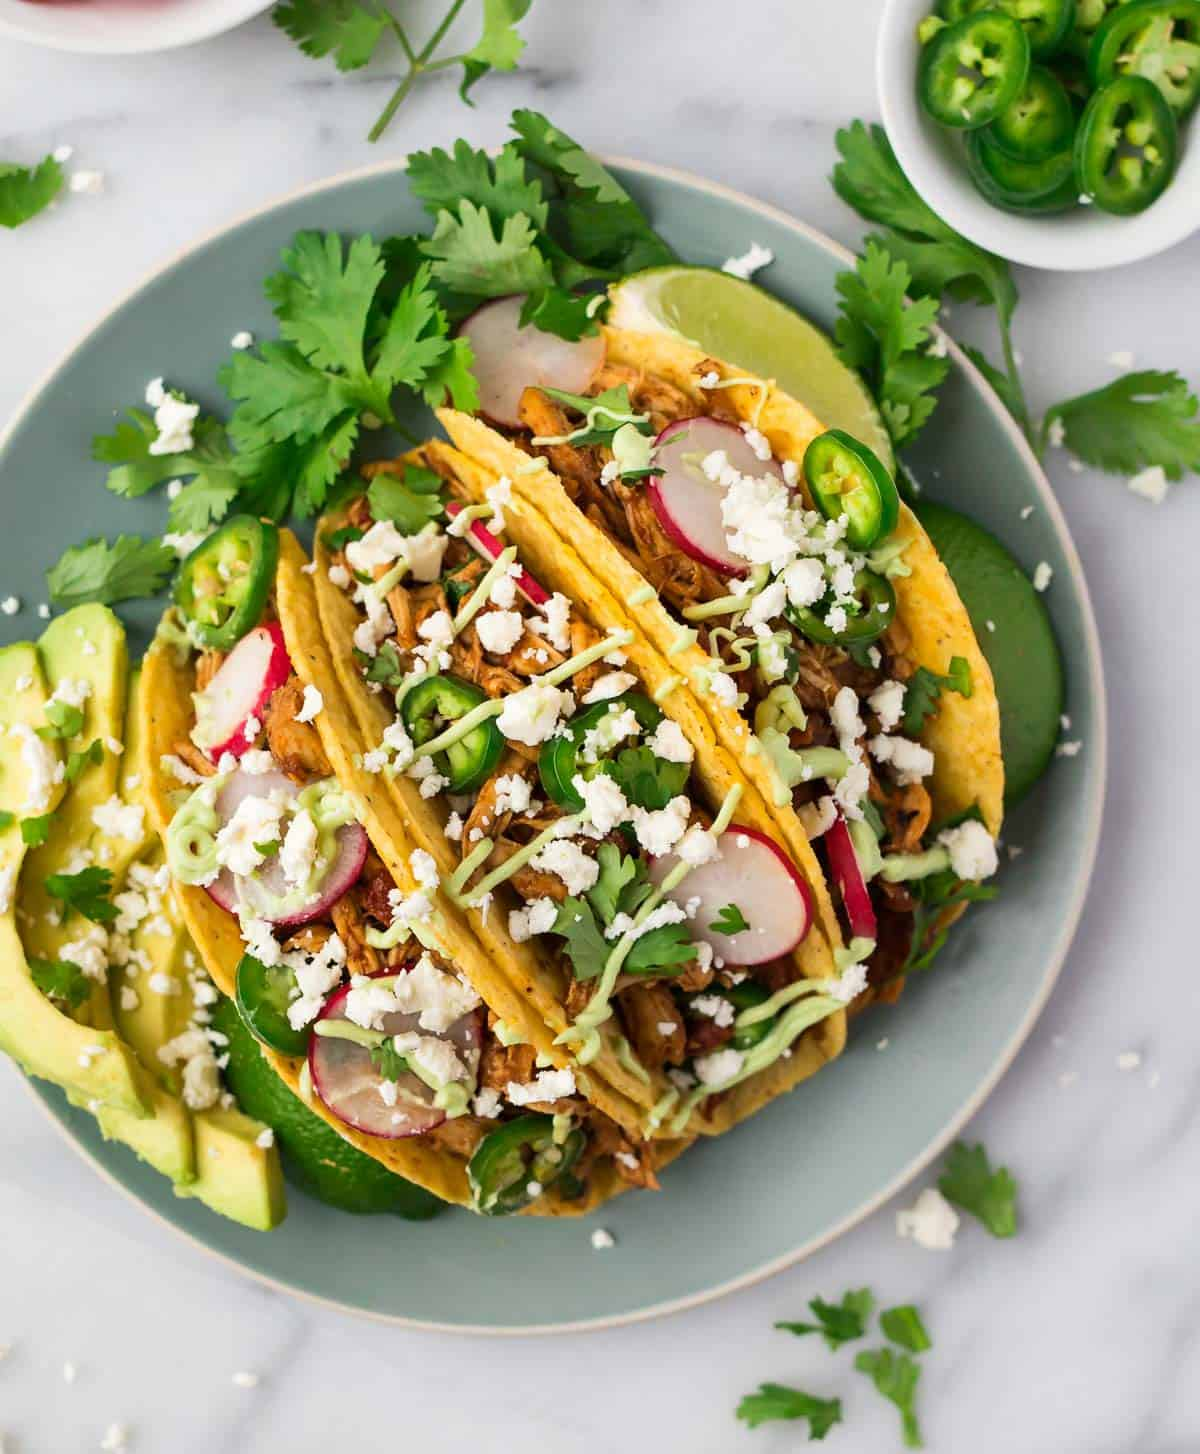 Three instant pot shredded chicken tacos in crunchy corn tortillas garnished with cilantro and avocado on a mint-colored plate.